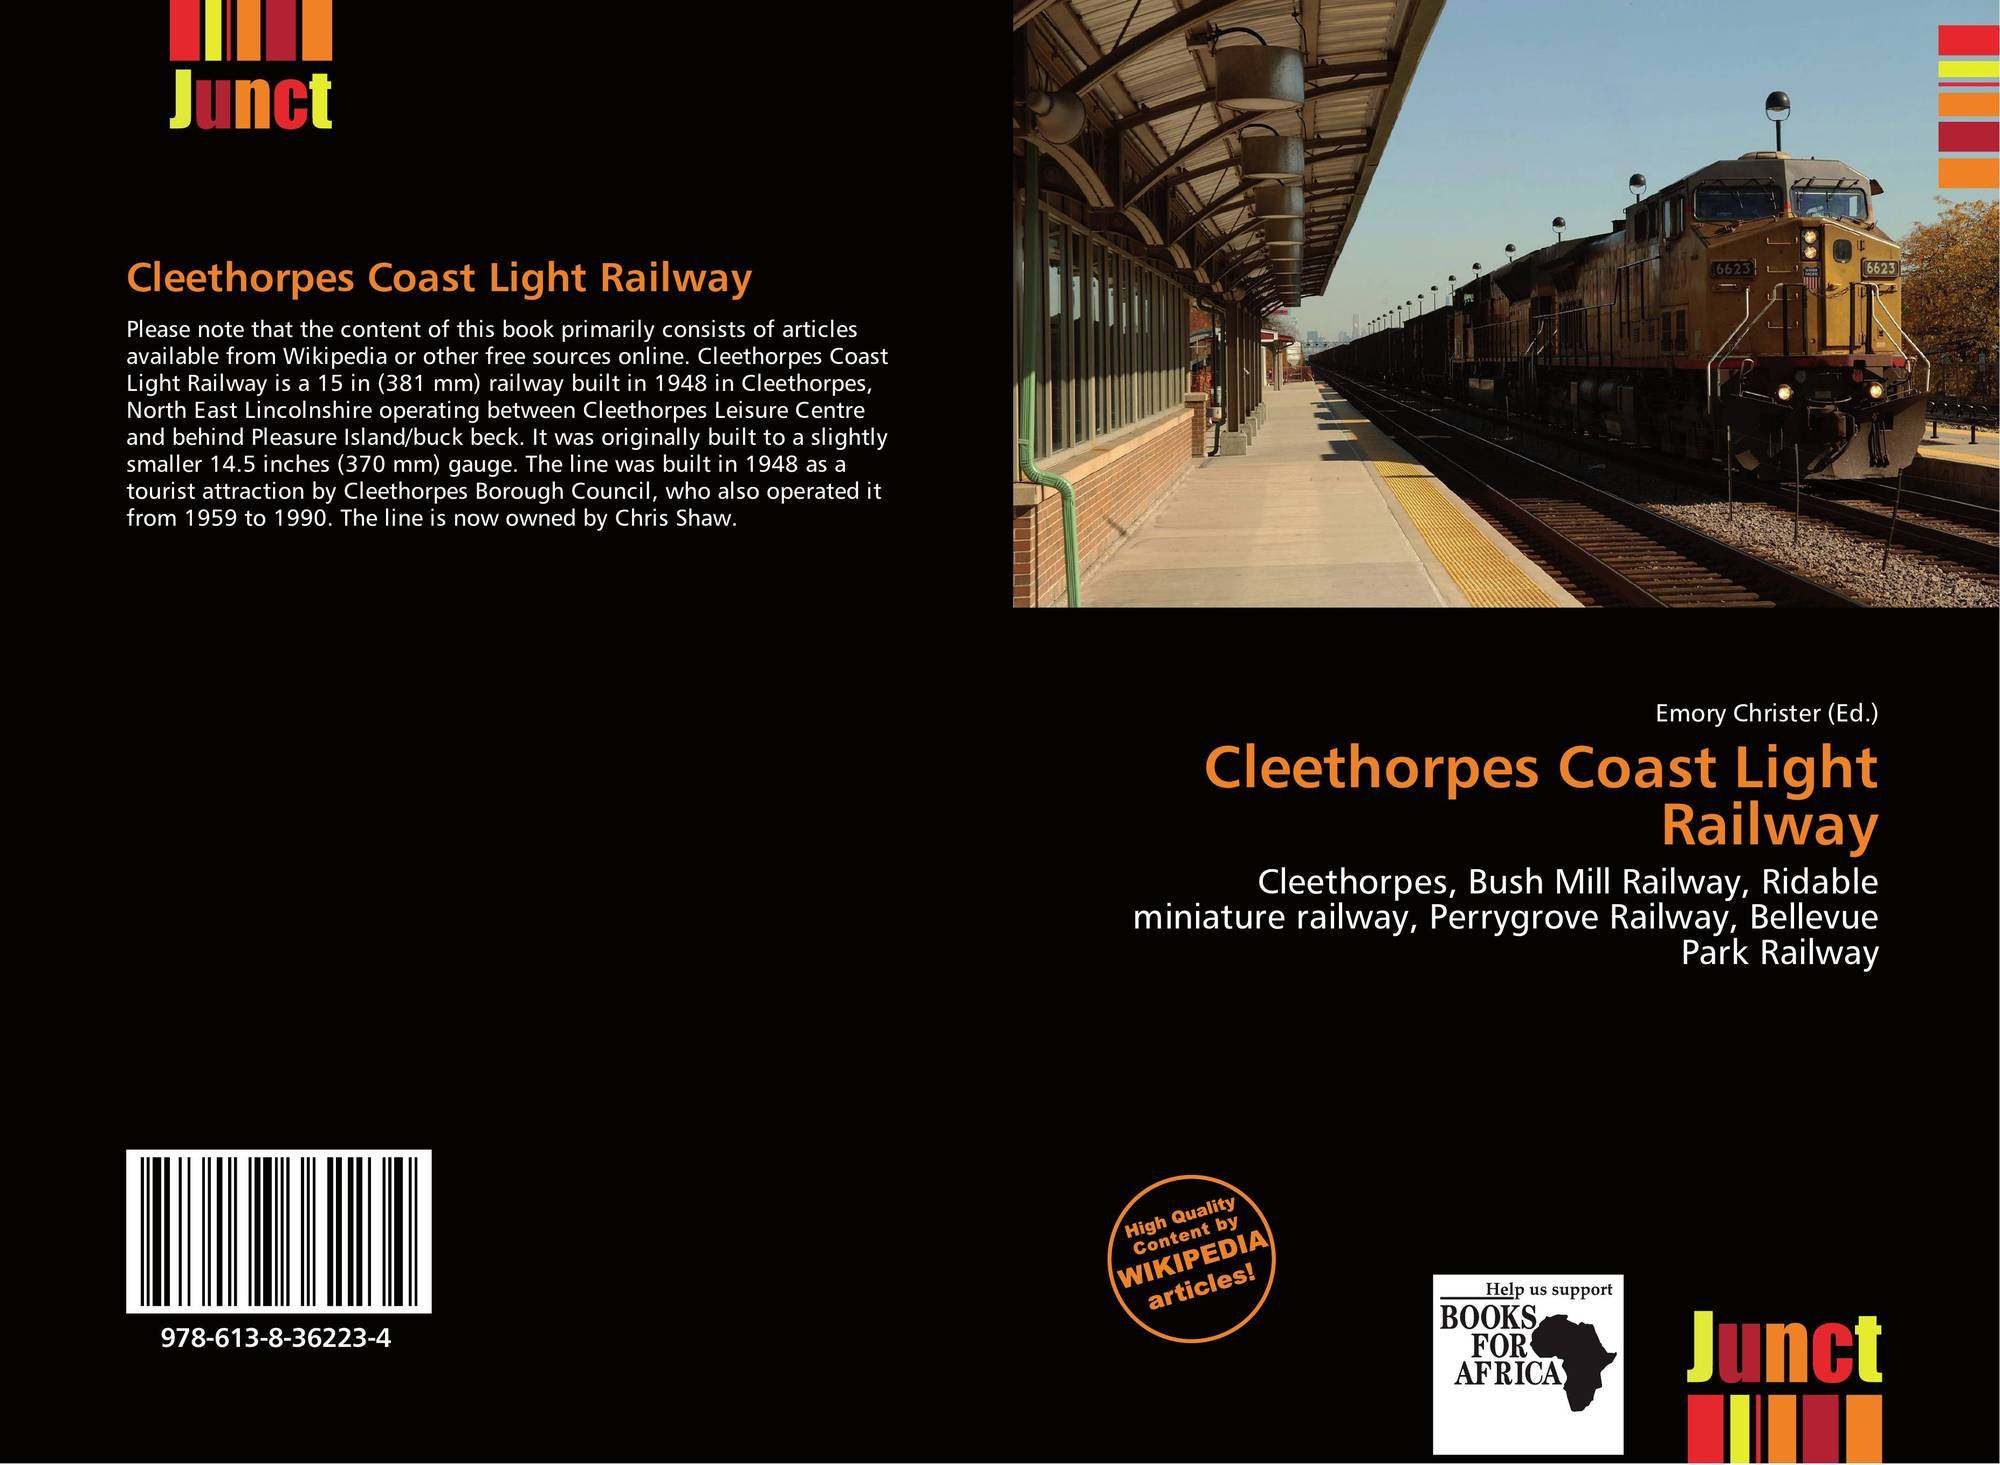 Cleethorpes Coast Light Railway, 978-613-8-36223-4